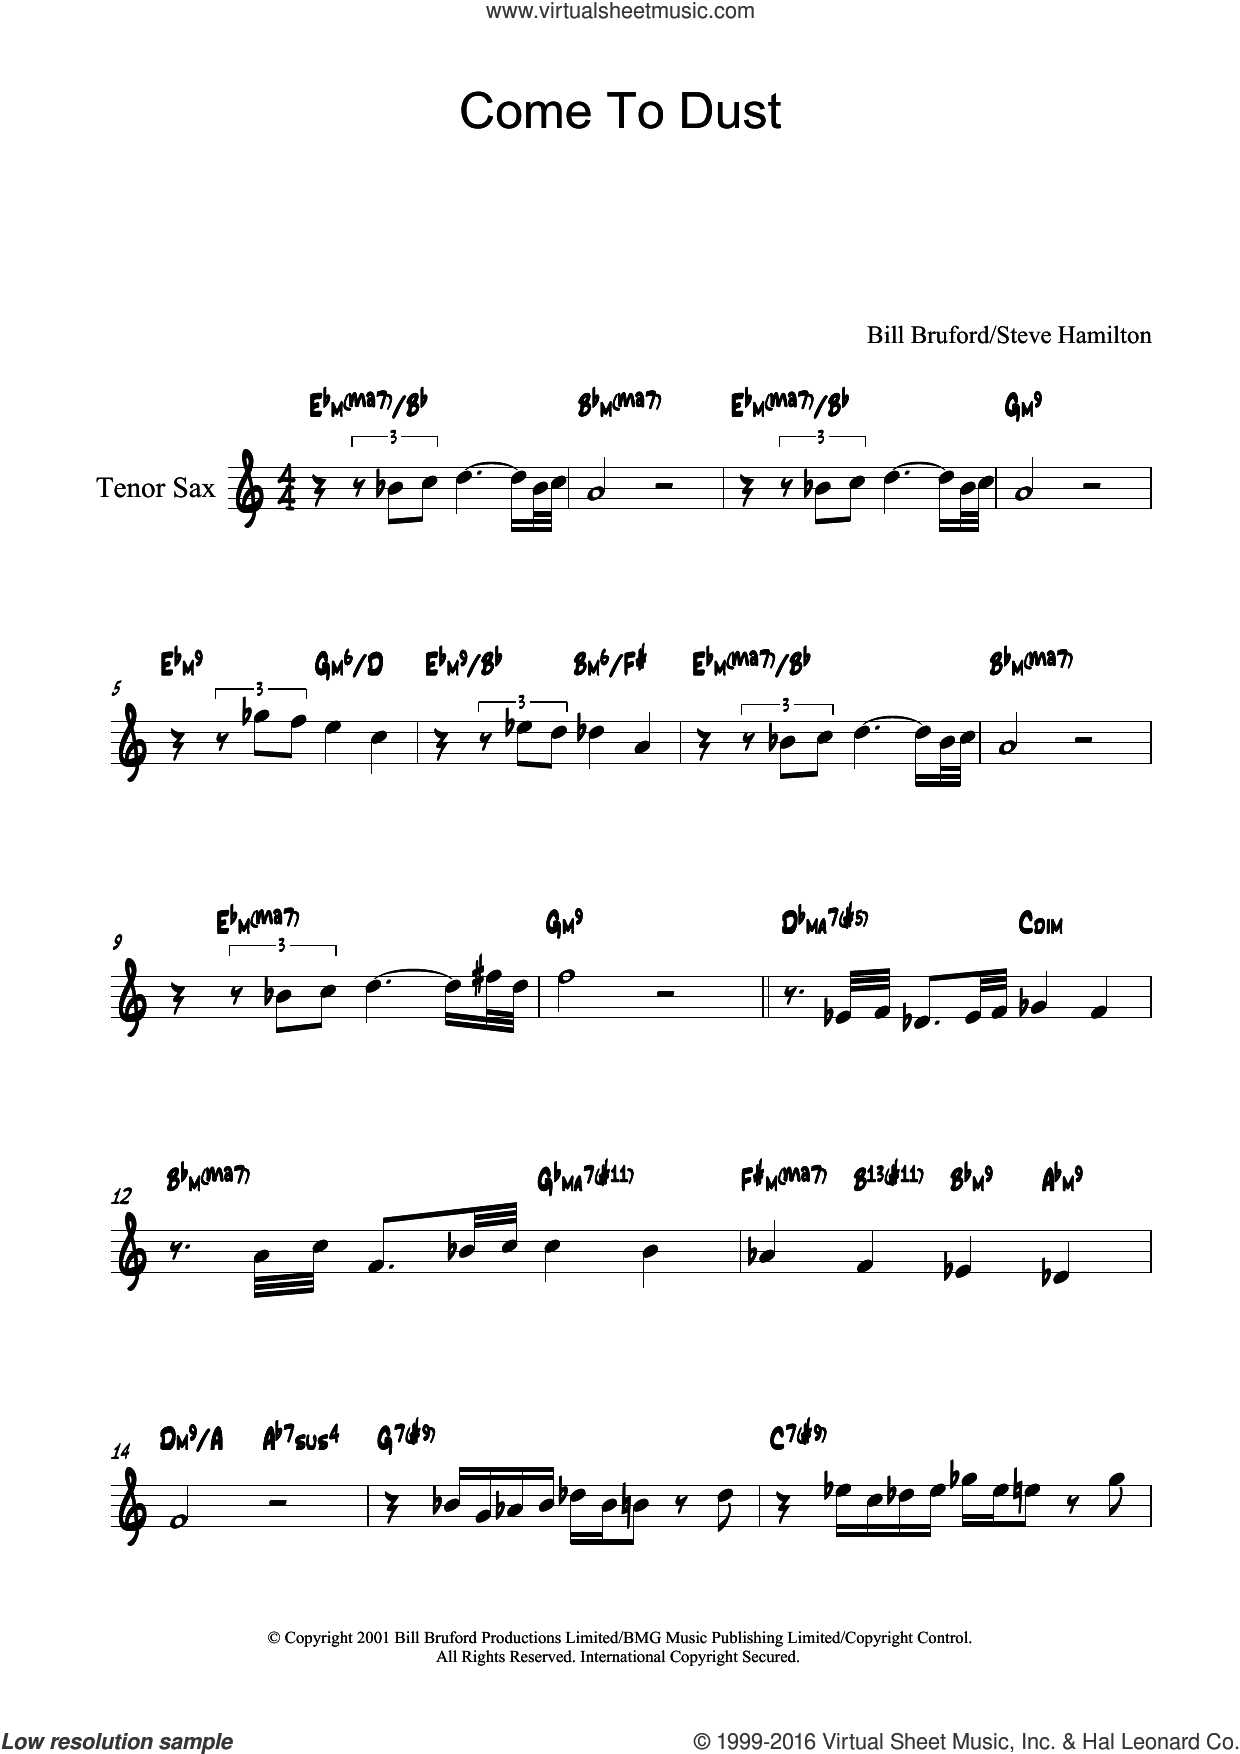 Come To Dust sheet music for tenor saxophone solo by Bill Bruford and Steve Hamilton, intermediate skill level